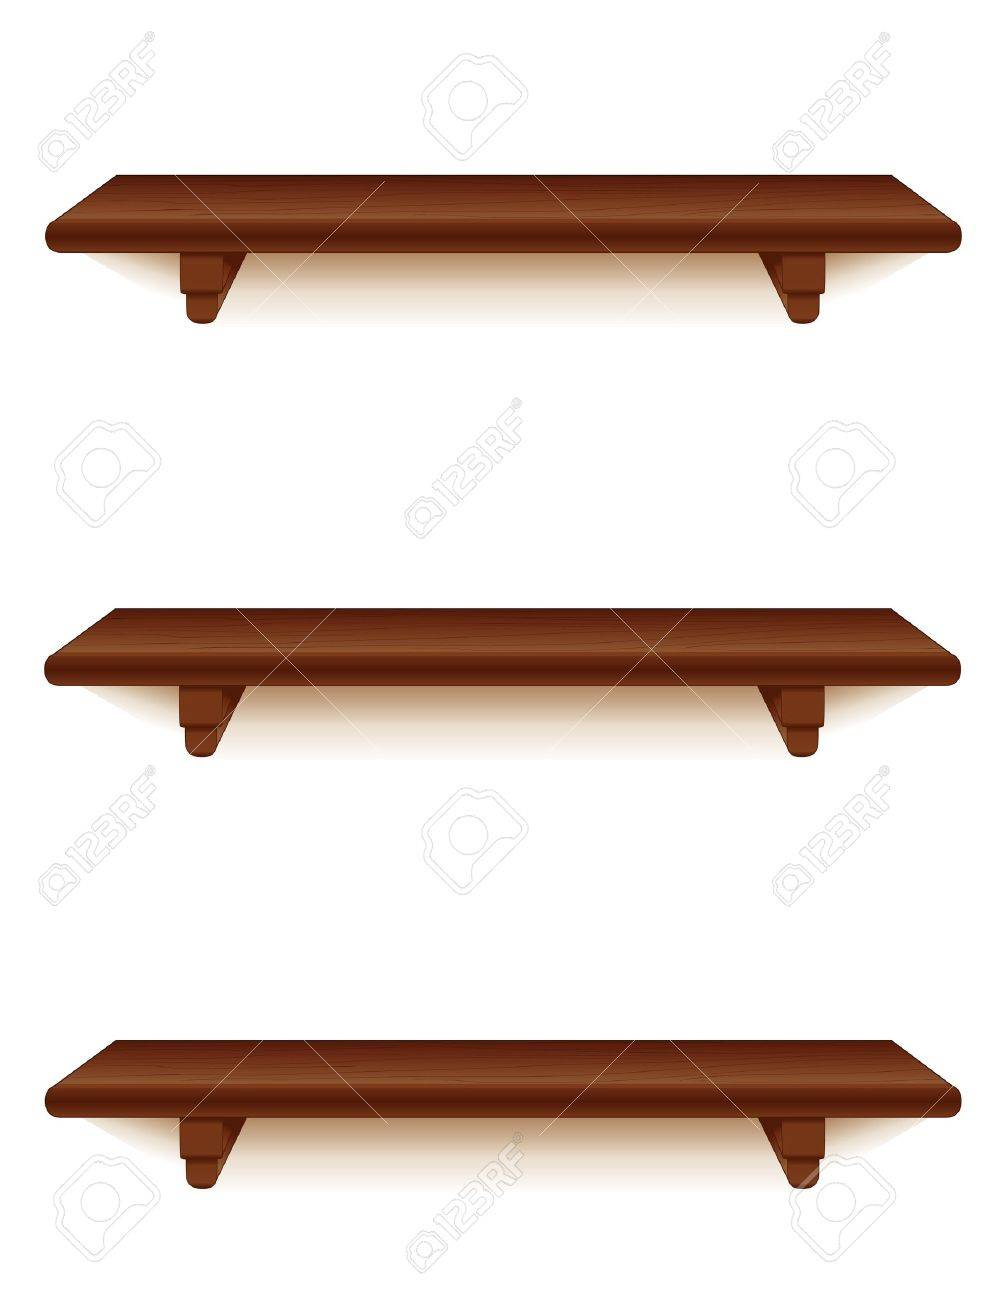 Mahogony Wood Wall Shelves With Brackets Isolated On White